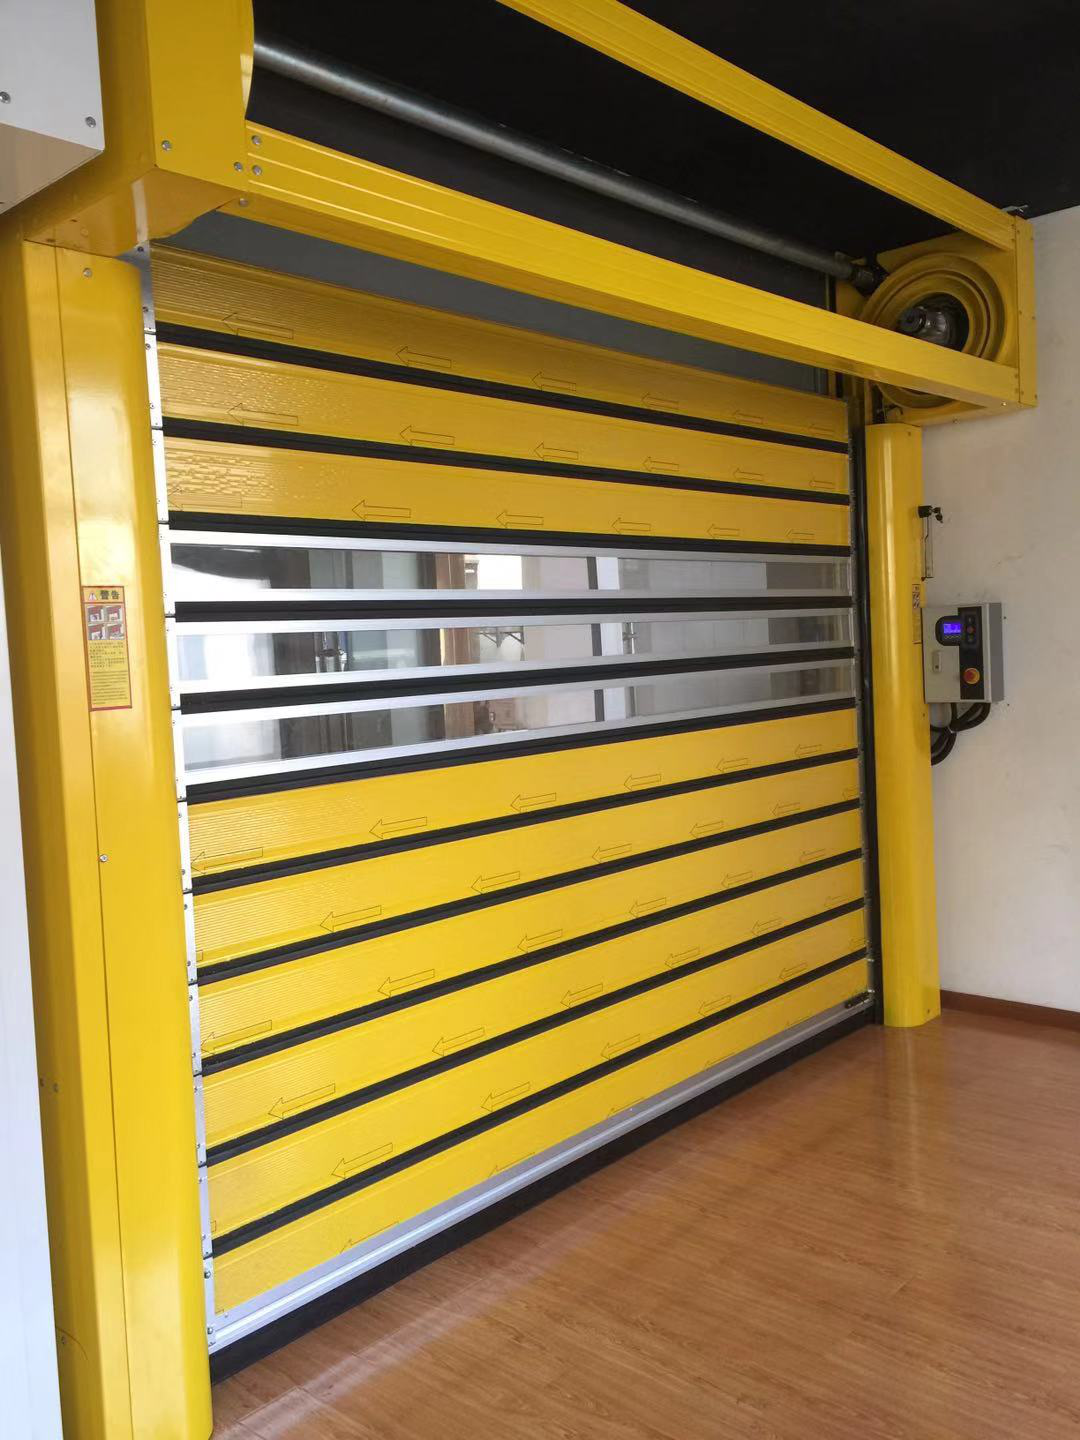 The Specification of High Speed Spiral Doors